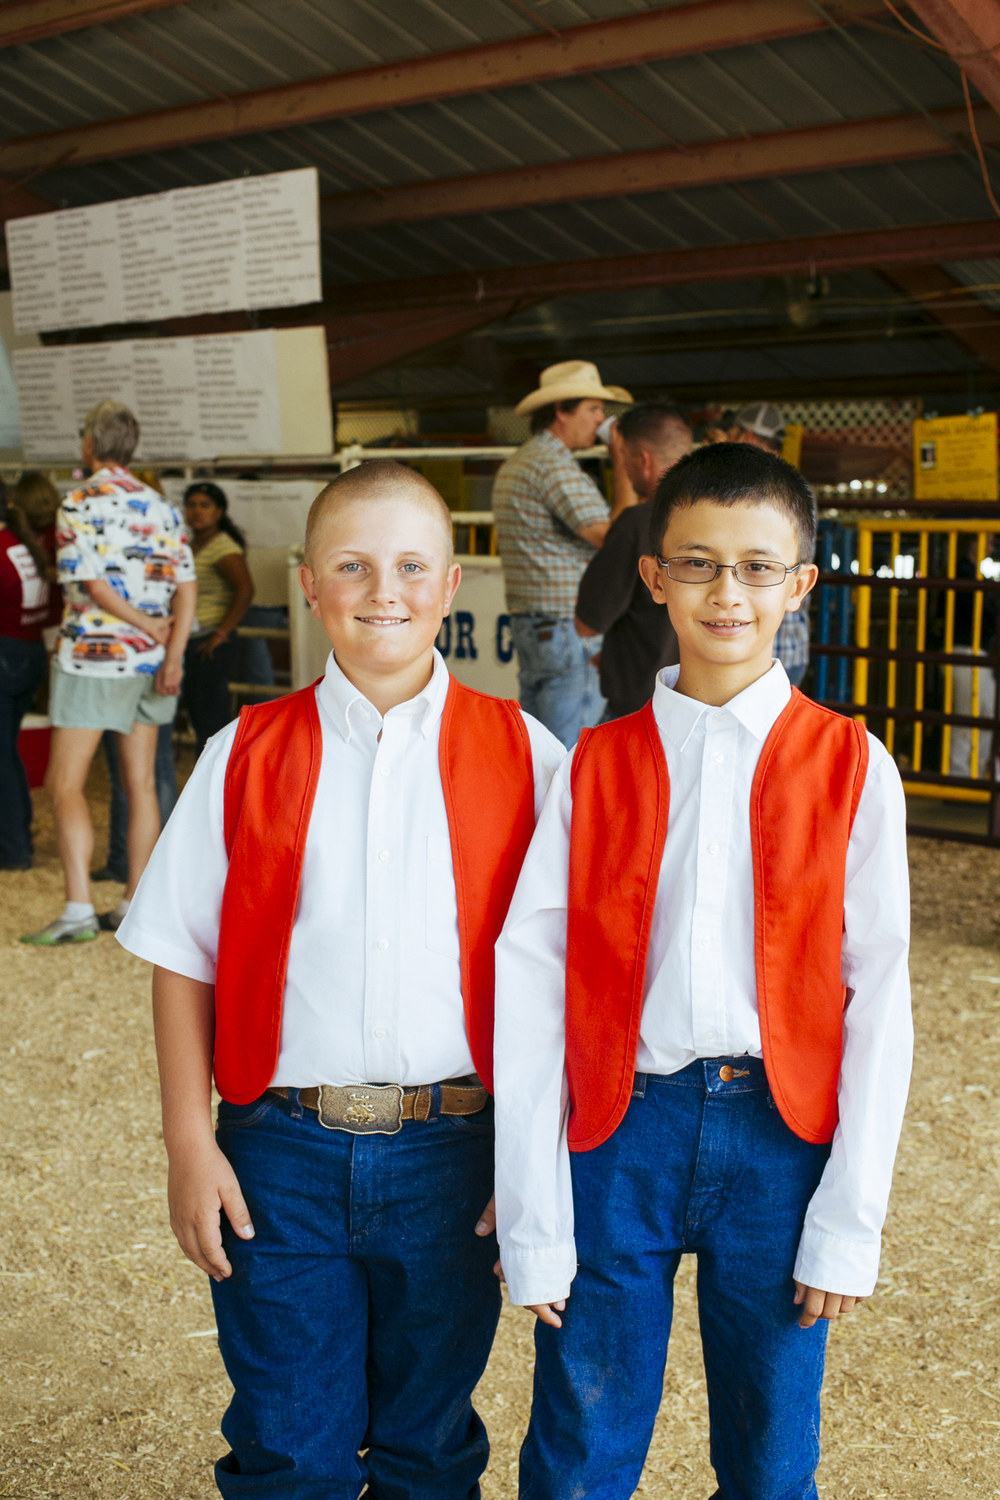 KaraBrodgesell_CountyFair_KB_2020.jpg